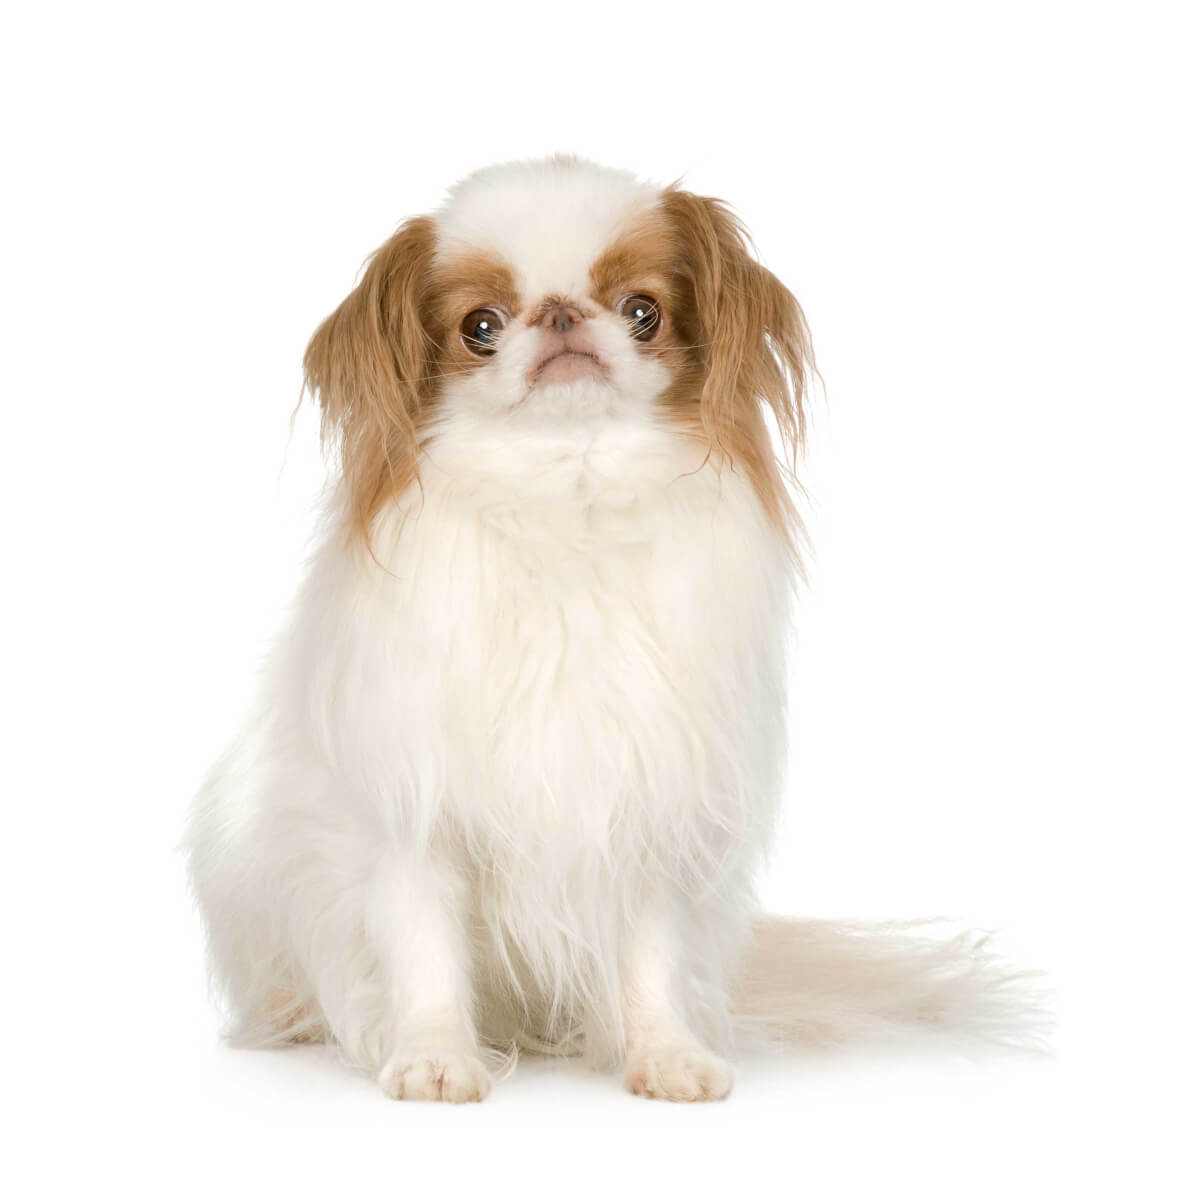 Japanese Chin Dog Breed » Information, Pictures, & More